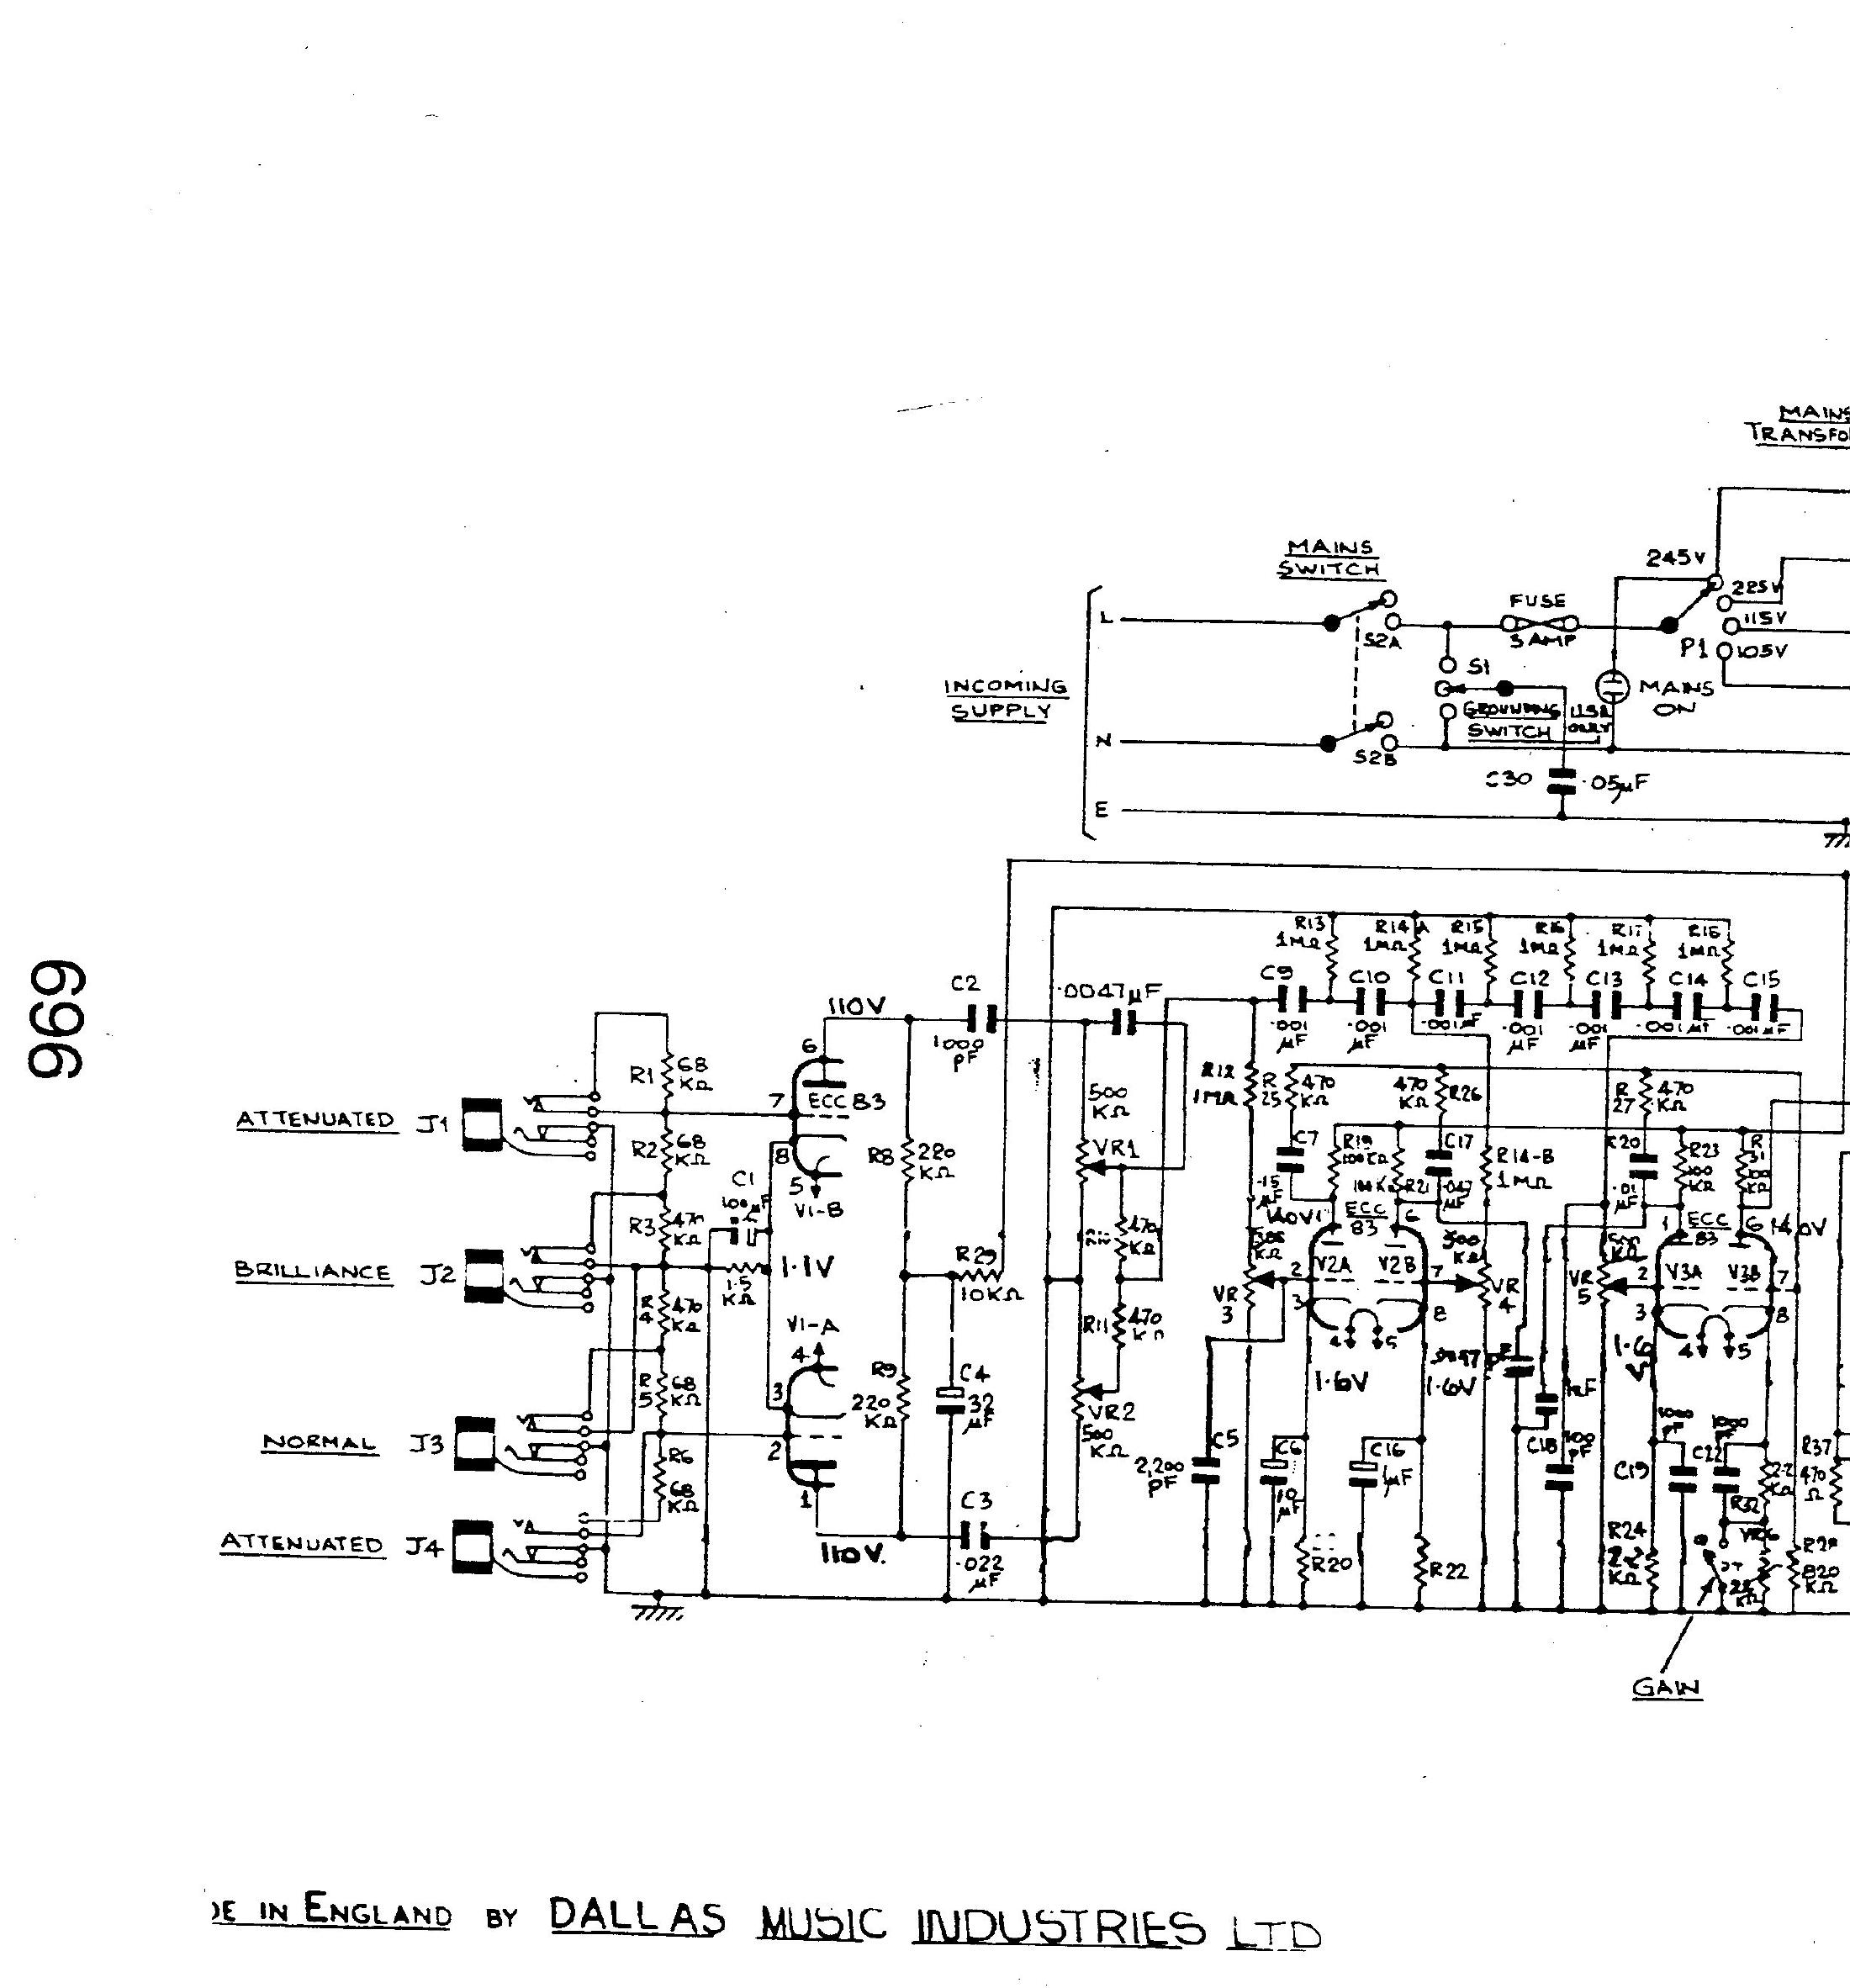 Amp Schematics on what are service, what are construction, what are software, data flow diagram, block diagram, one-line diagram, piping and instrumentation diagram, what are block diagrams, what are tips, tube map, what are specifications, technical drawing, what are code, cross section, what are inventions, electronic design automation, schematic editor, what are electronics, what are power, what are equipment, what are articles, what are systems, what are ideas, schematic capture, ladder logic, function block diagram, what are technical publications, circuit diagram, what are links, what are gerbers, control flow diagram, what are kits, straight-line diagram, what are designs, functional flow block diagram, what are photographs, diagramming software,